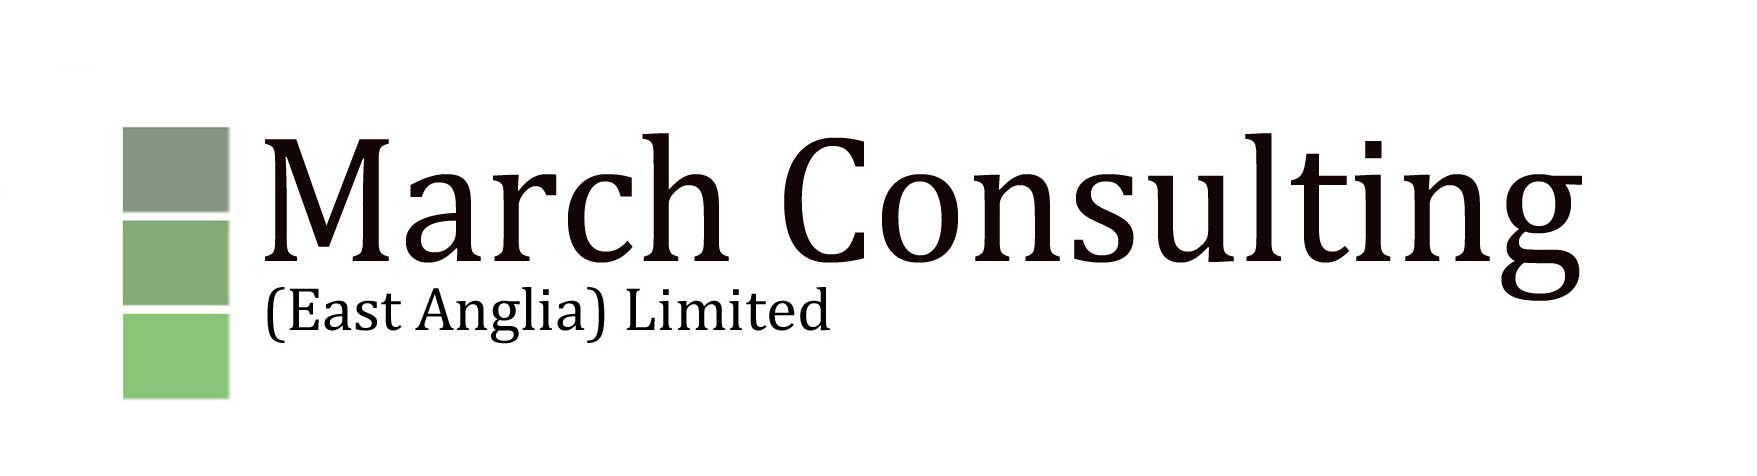 march consulting logo